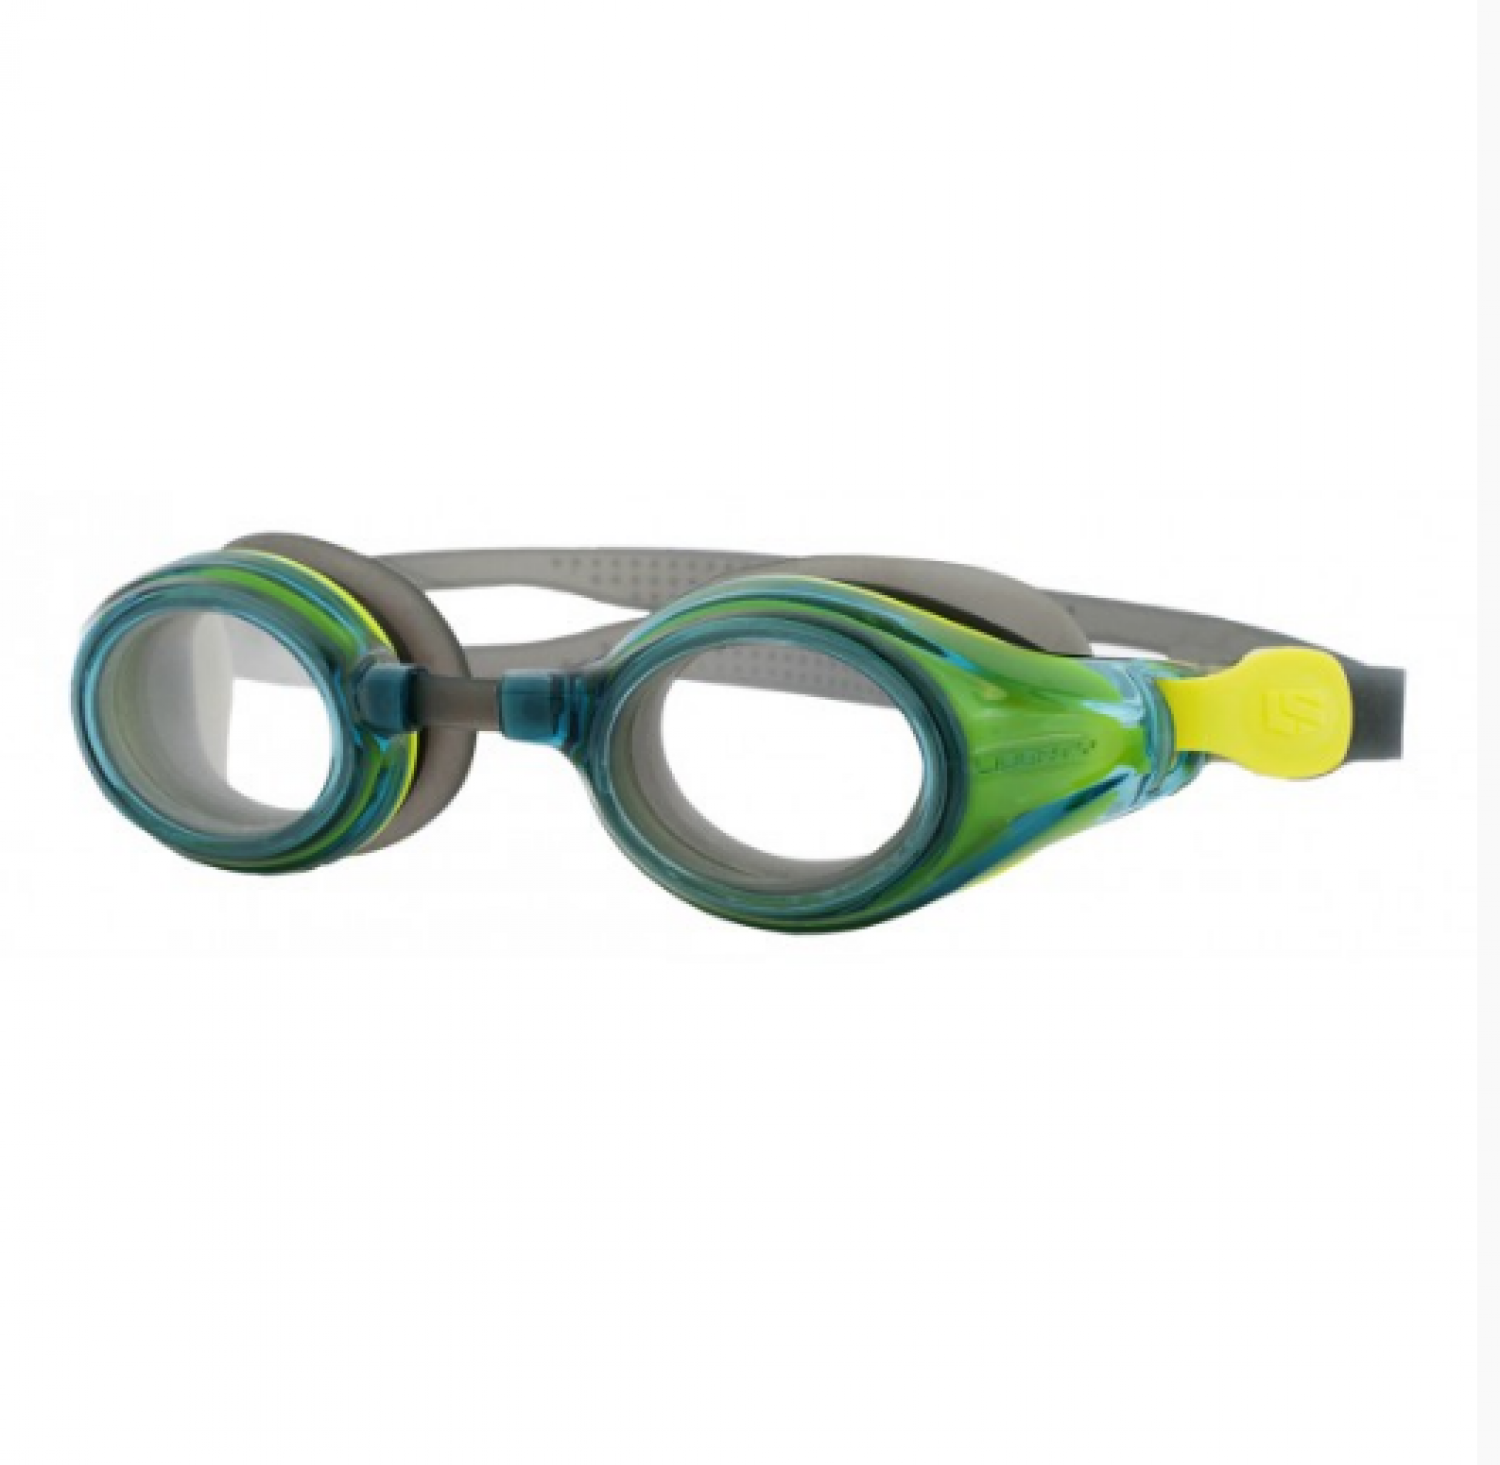 9e4b402237 Rec Specs Frogeye Swimming Goggles (Prescription Available)